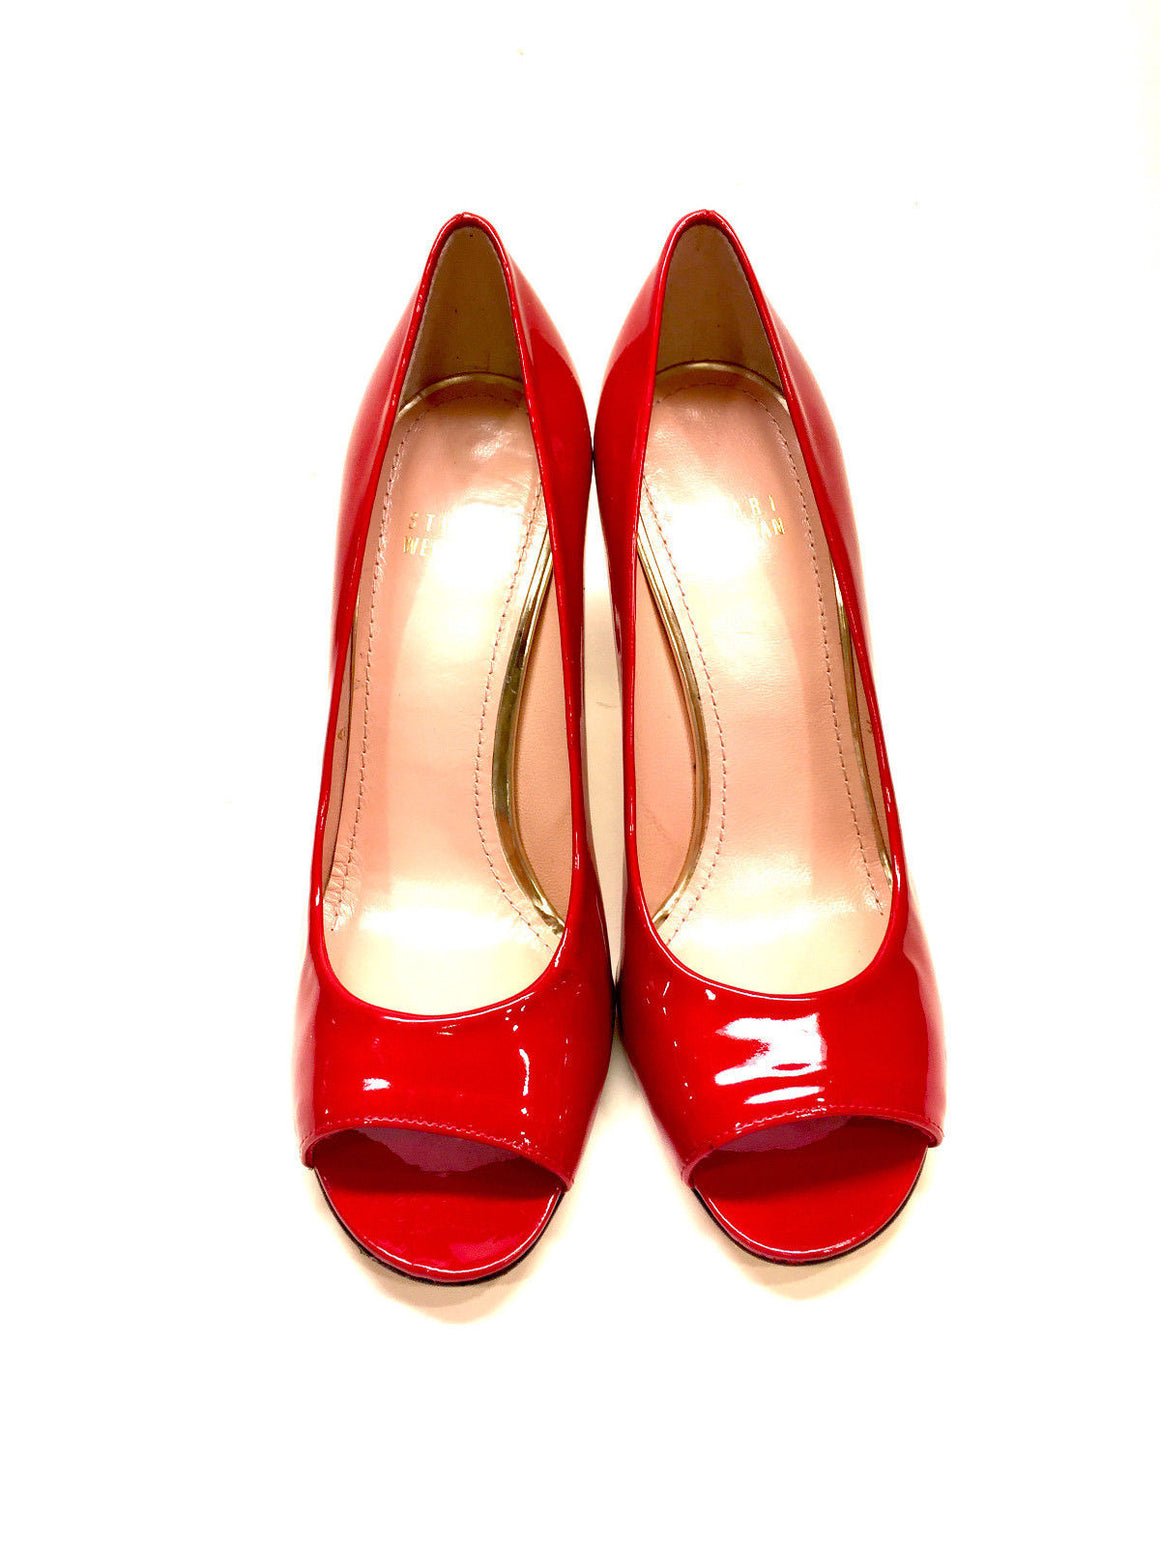 STUART WEITZMAN  Red Patent Leather Open-Toe Heel Pumps Shoes  Size: 7M